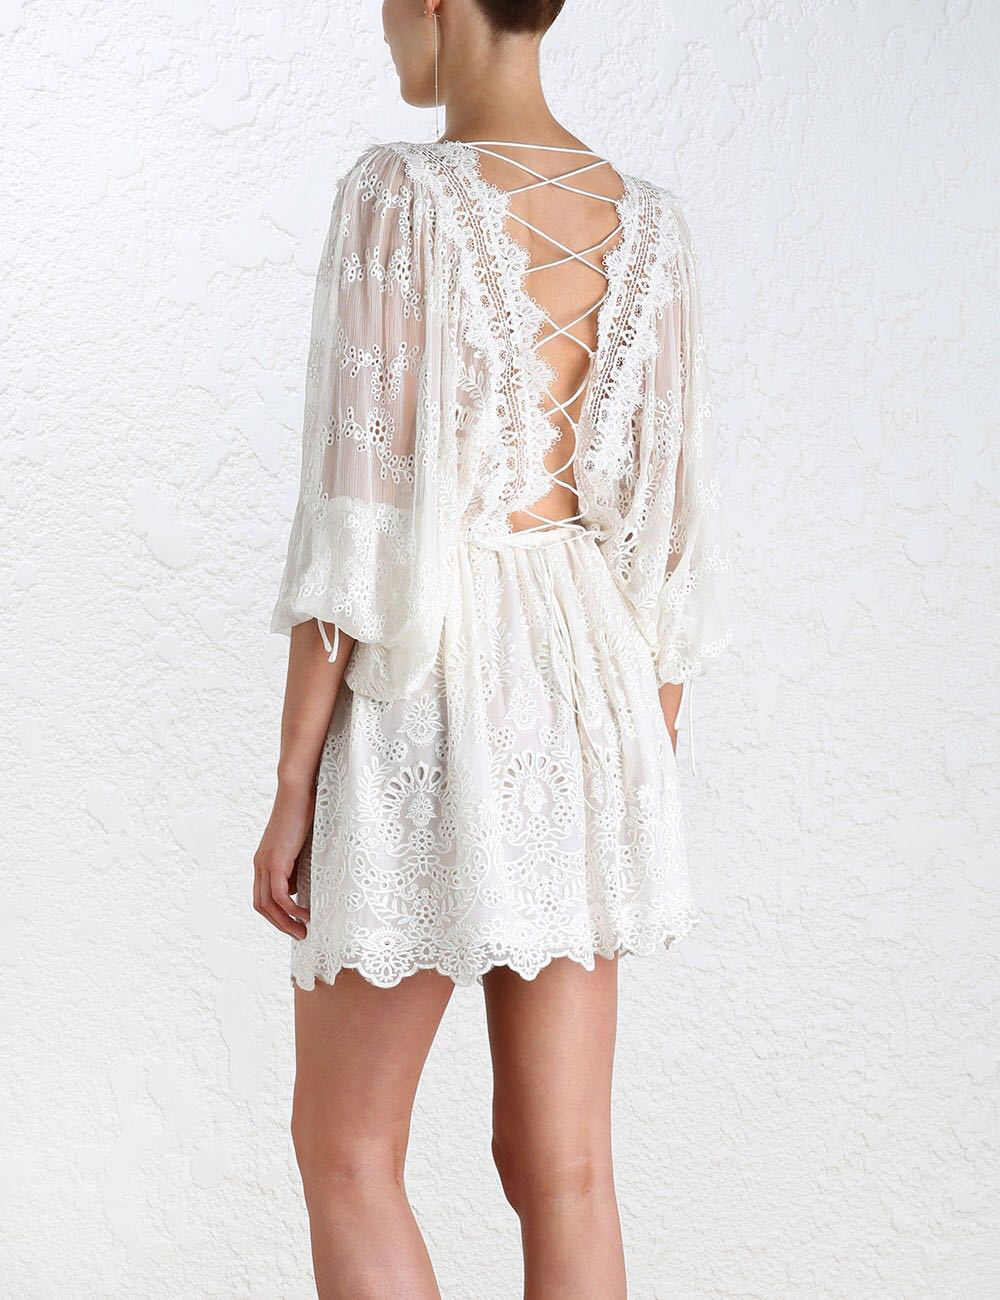 Bohemian Gypisy Robe Femme Tunique Hippie Boho Embroidery Crochet Lace Up Long Sleeved Women White Backless Summer Beach Dress